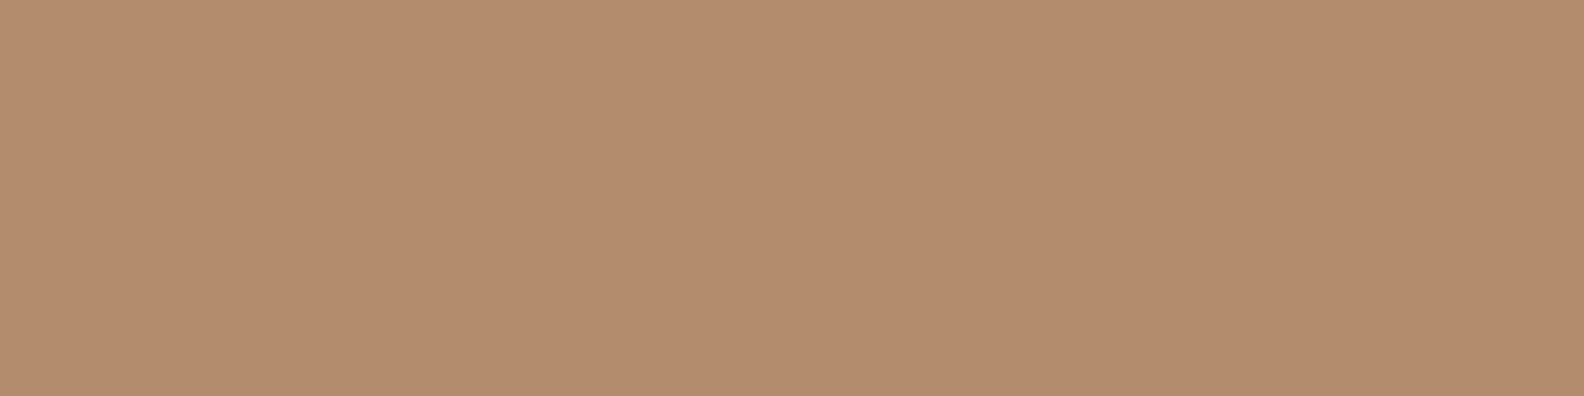 1584x396 Light Taupe Solid Color Background